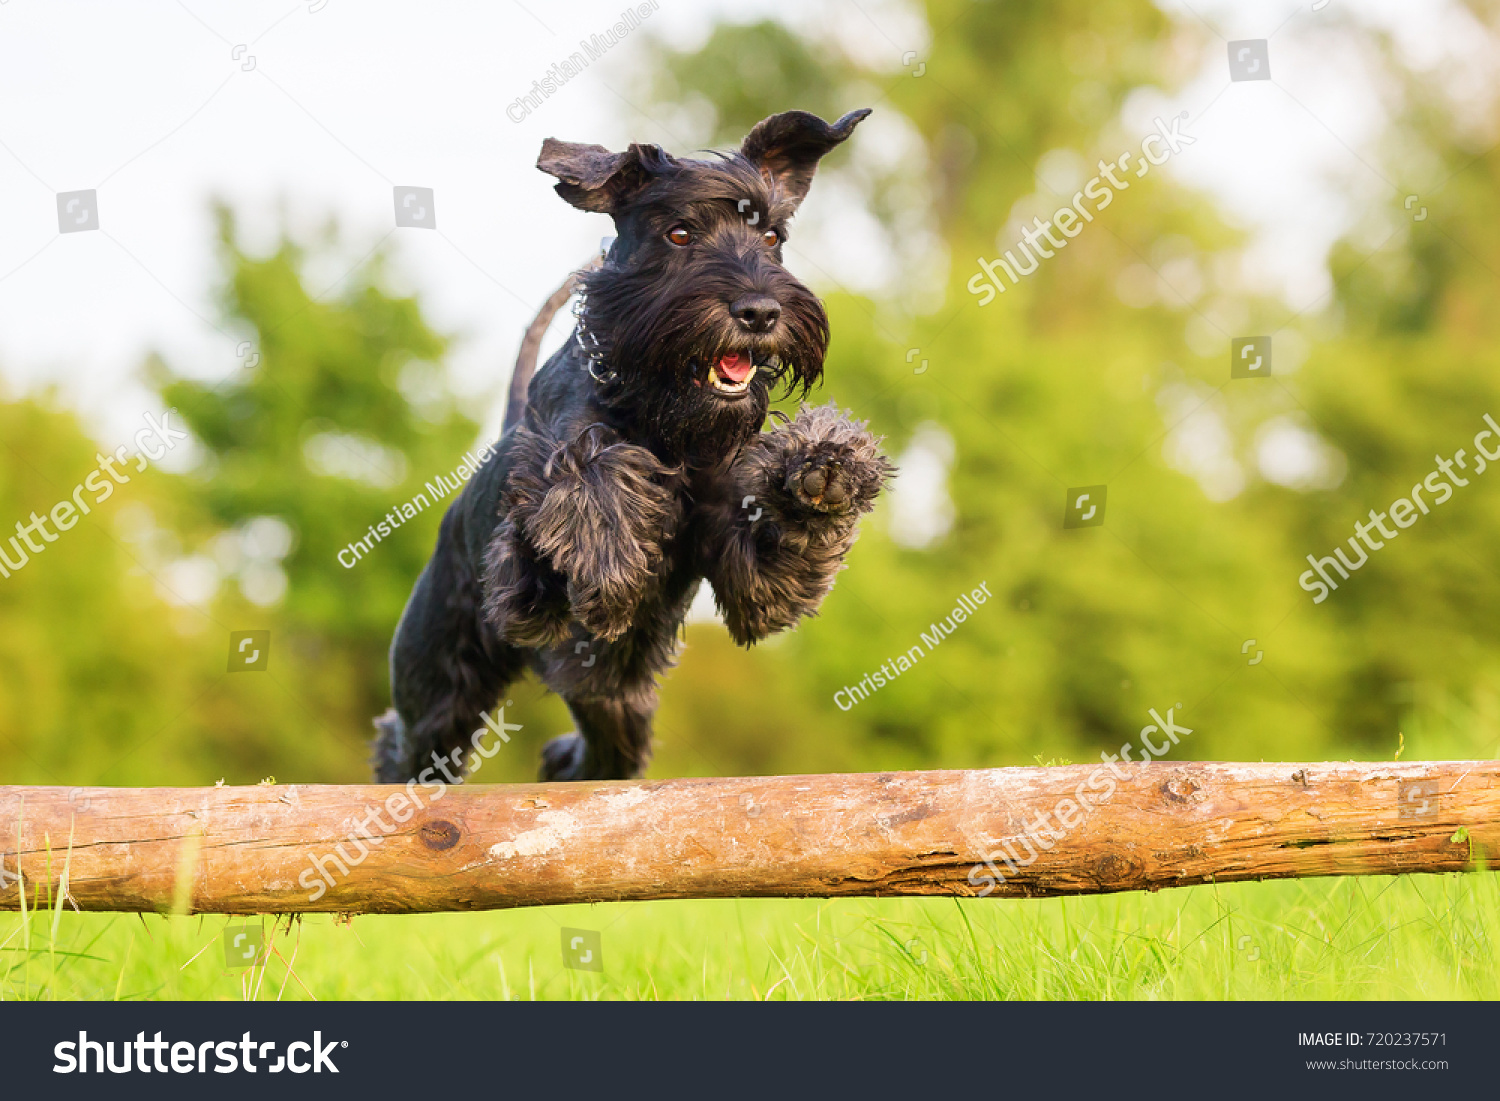 Picture of a standard schnauzer who jumps over a wooden beam #720237571